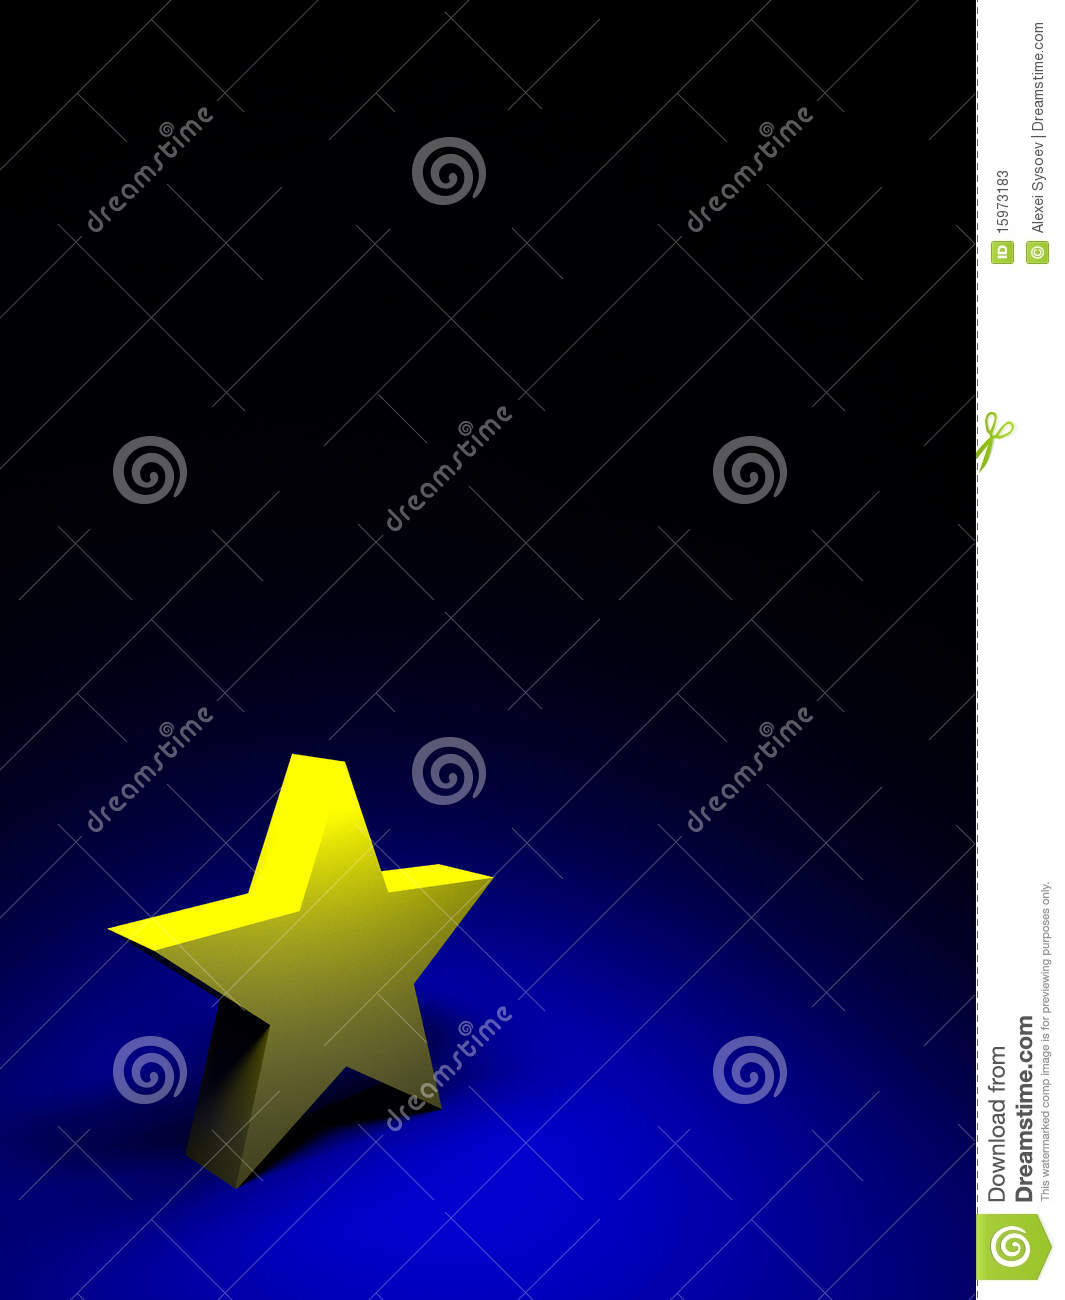 yellow star on dark blue background stock photos image